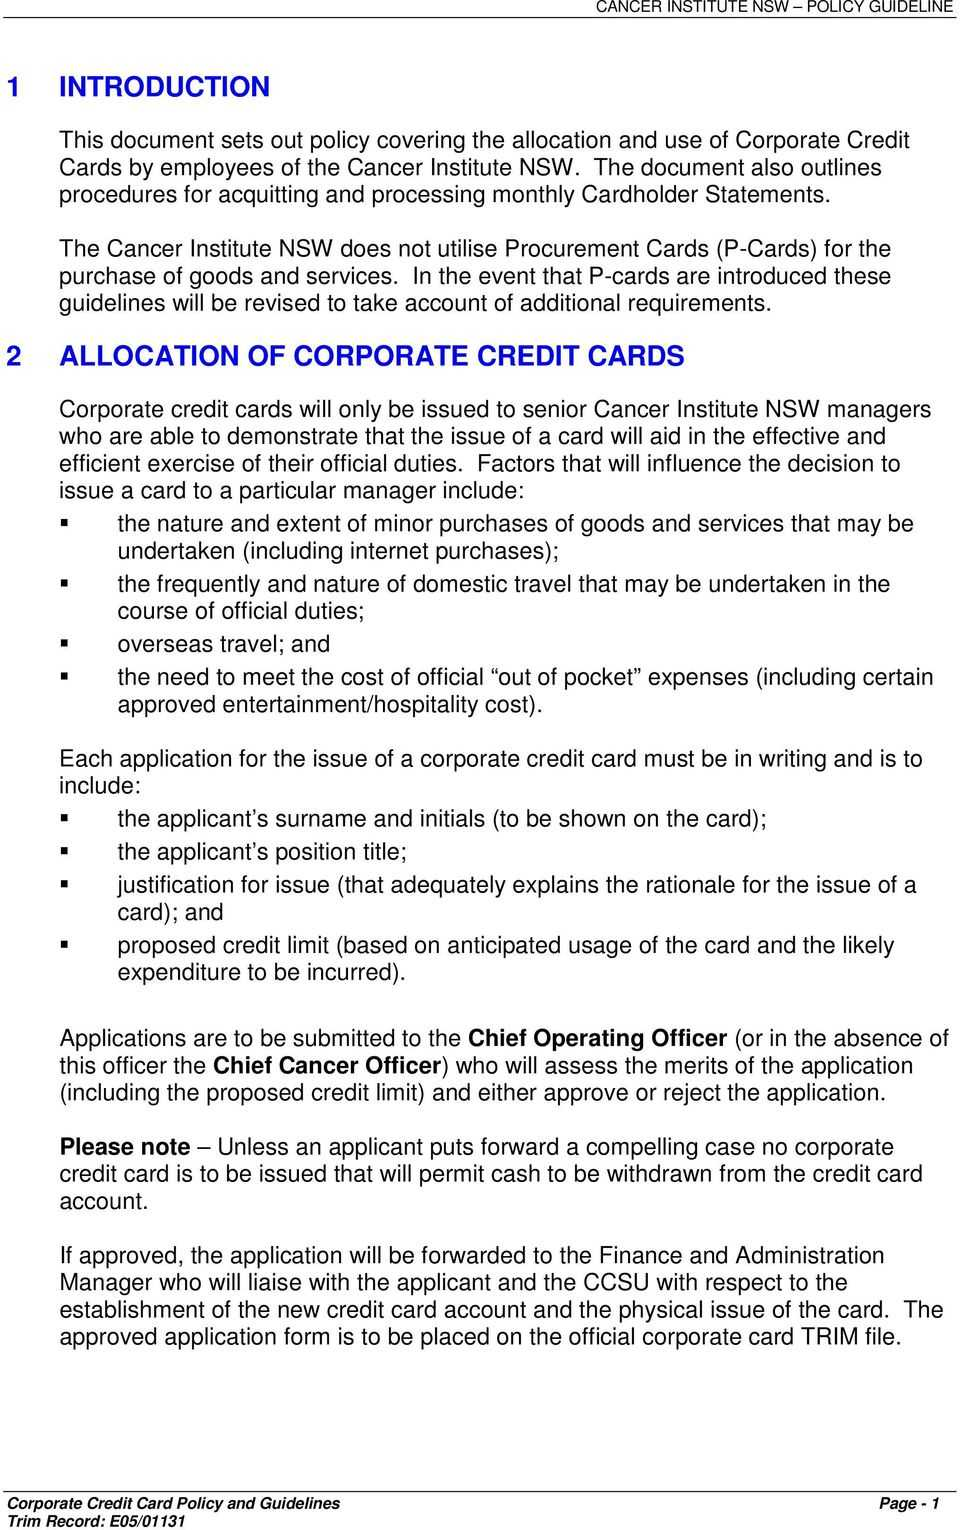 Corporate Credit Card Policy Template ] - Procurement Cards Throughout Company Credit Card Policy Template